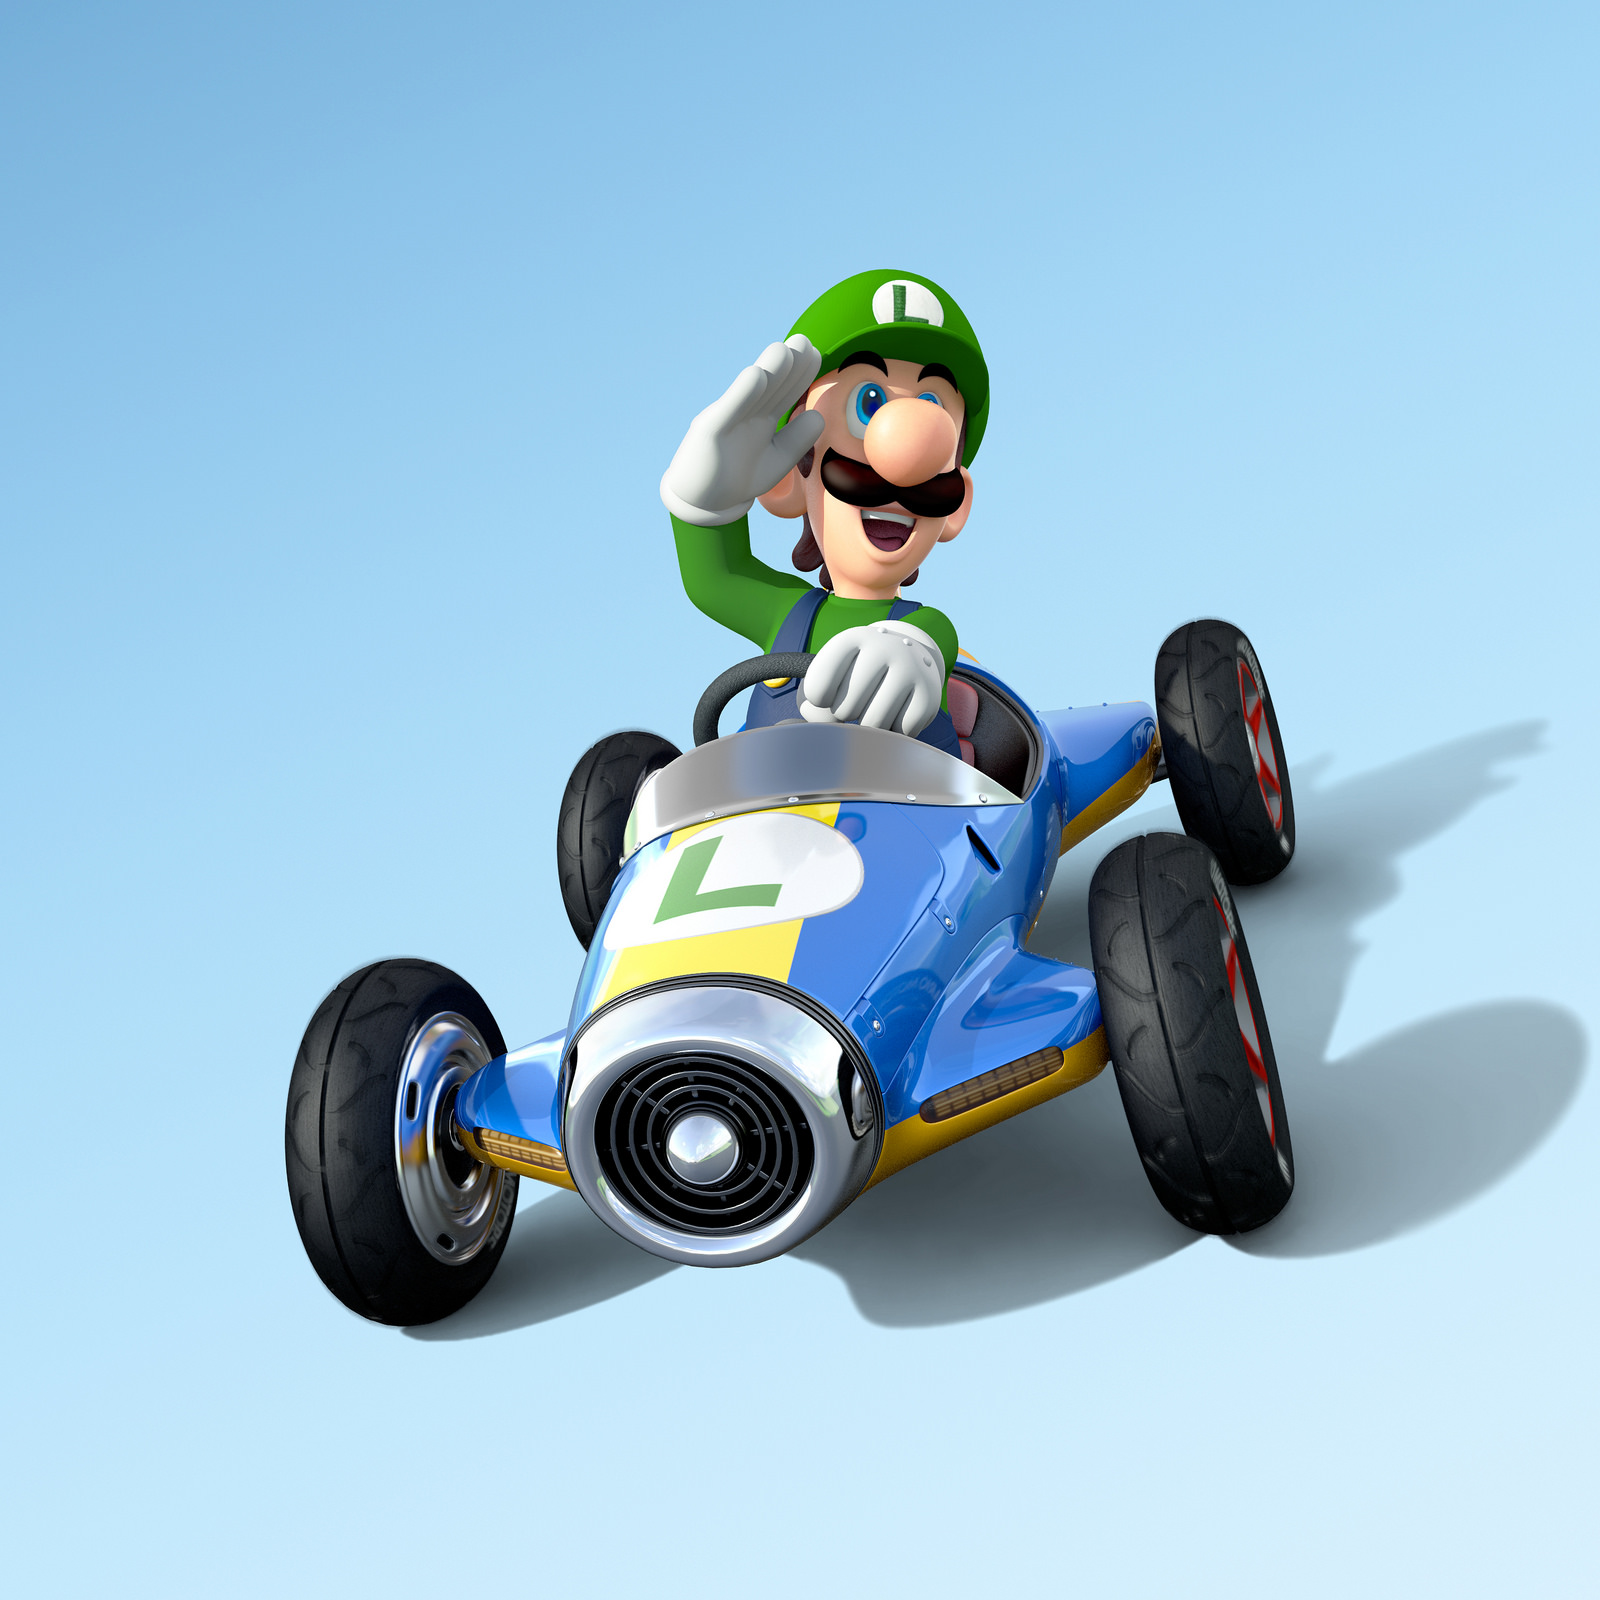 Mario Kart 8 Official Art and Screens Released - Mario ...